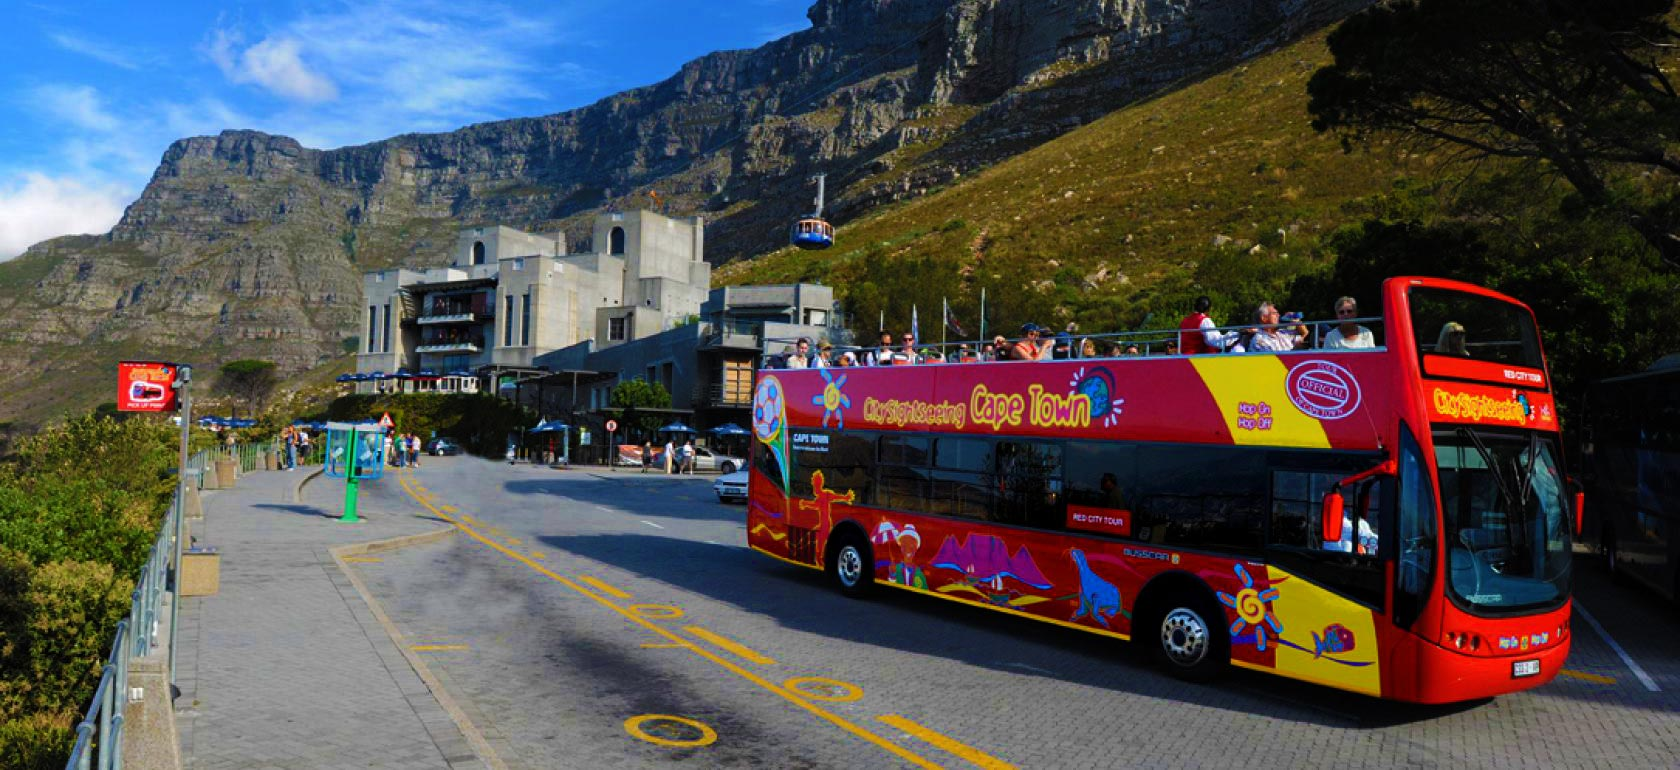 Kaapstad Hop on Hop off Bus